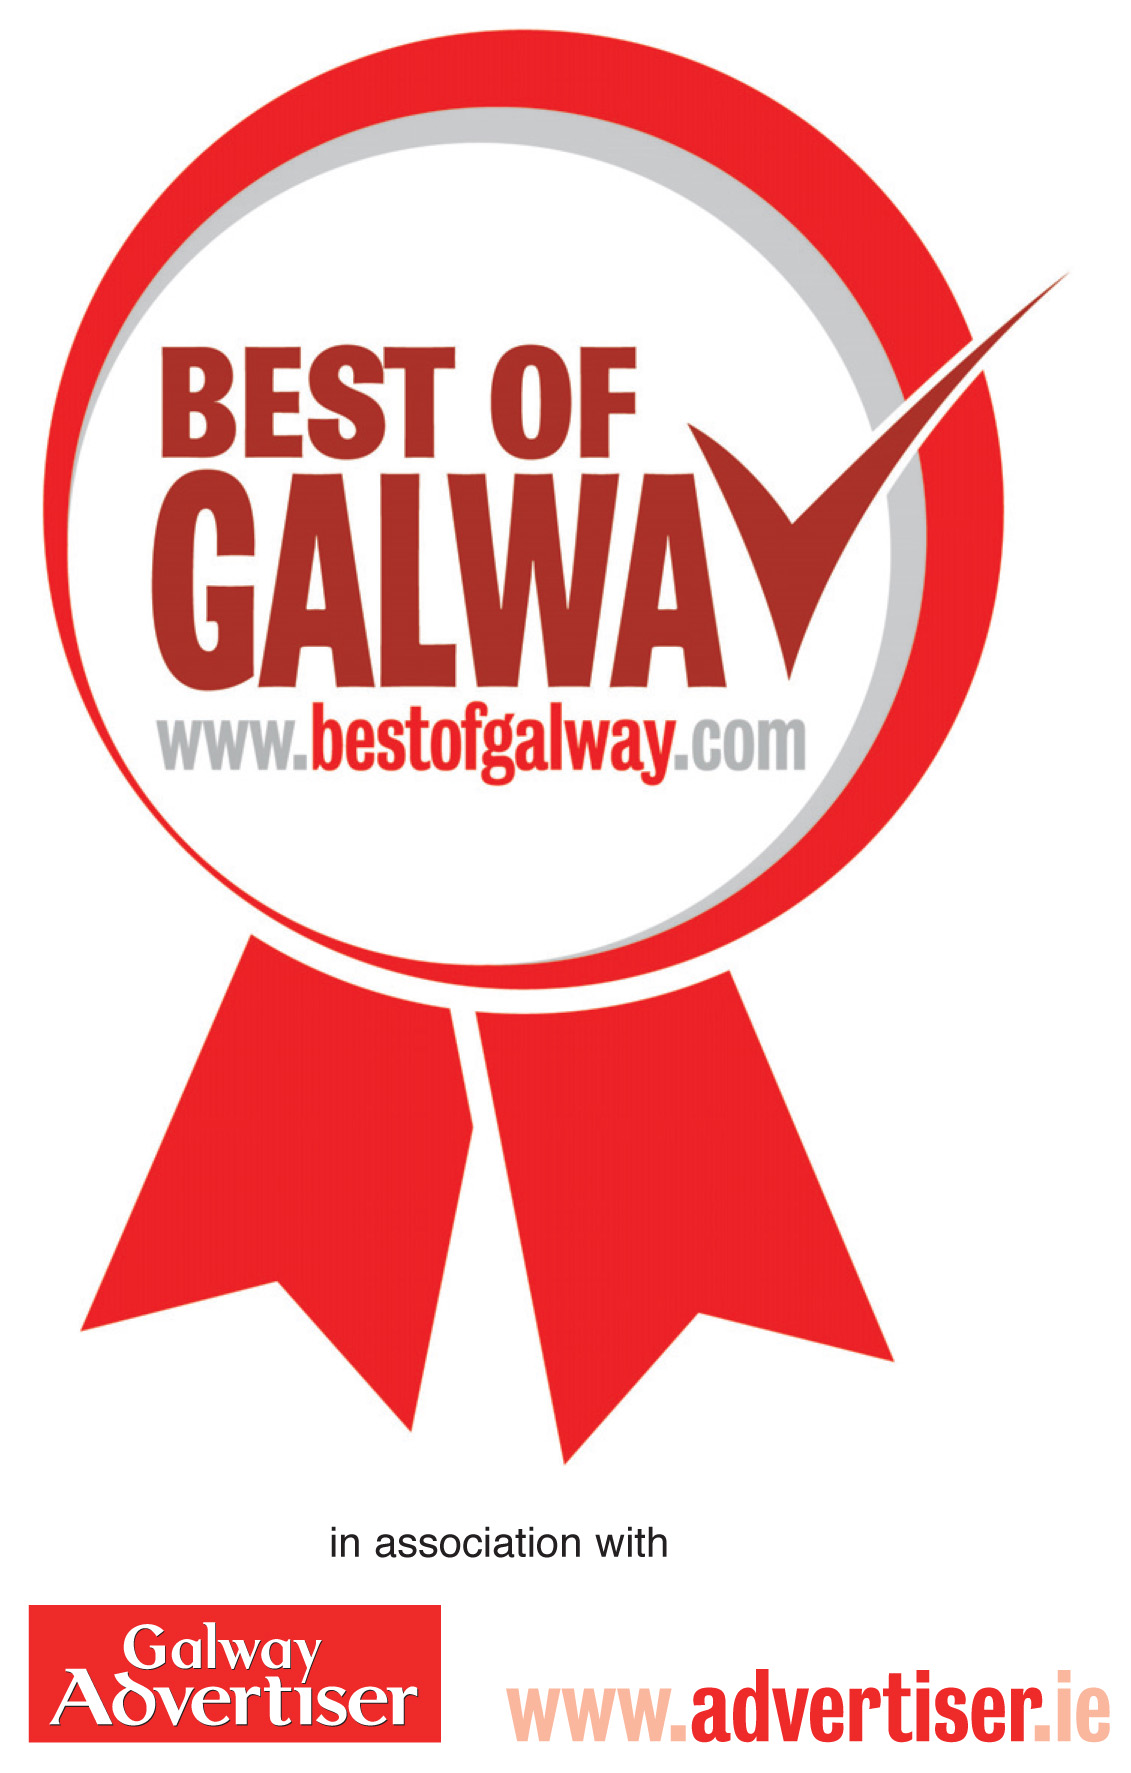 best of galway awards winters property management